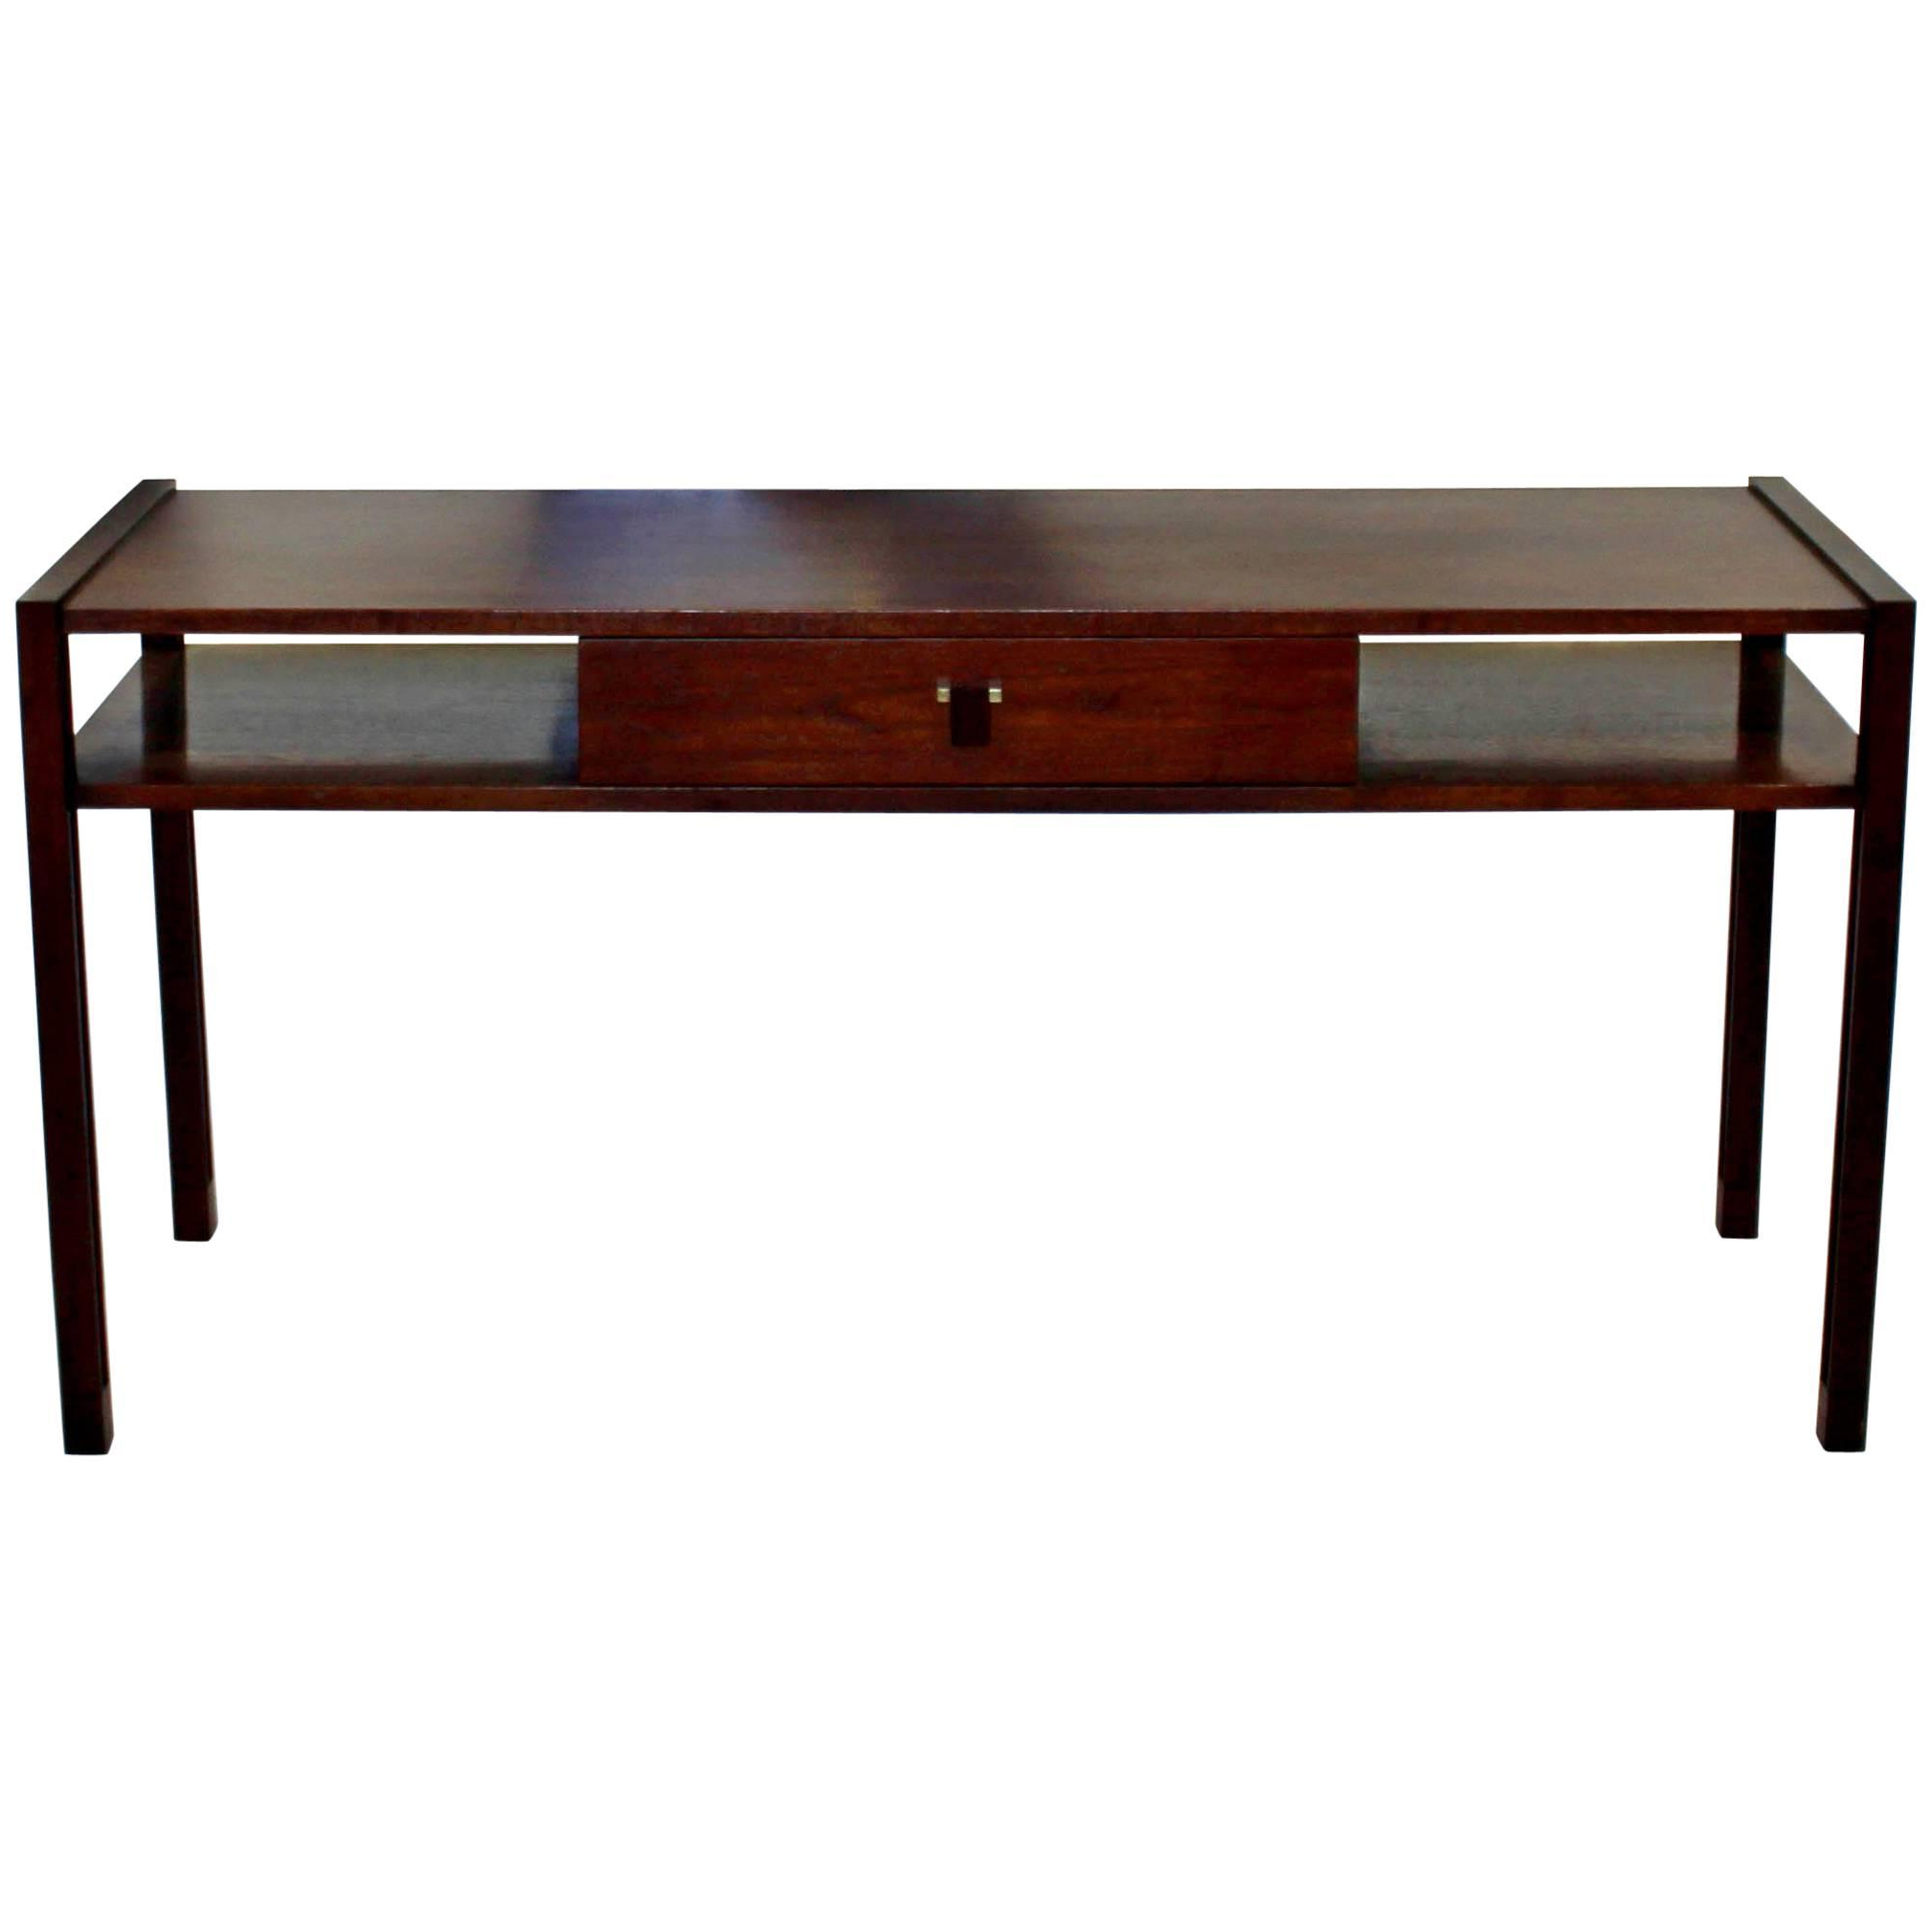 Dunbar Furniture Console Tables – 25 For Sale At 1Stdibs Inside Oak & Brass Stacking Media Console Tables (View 5 of 20)